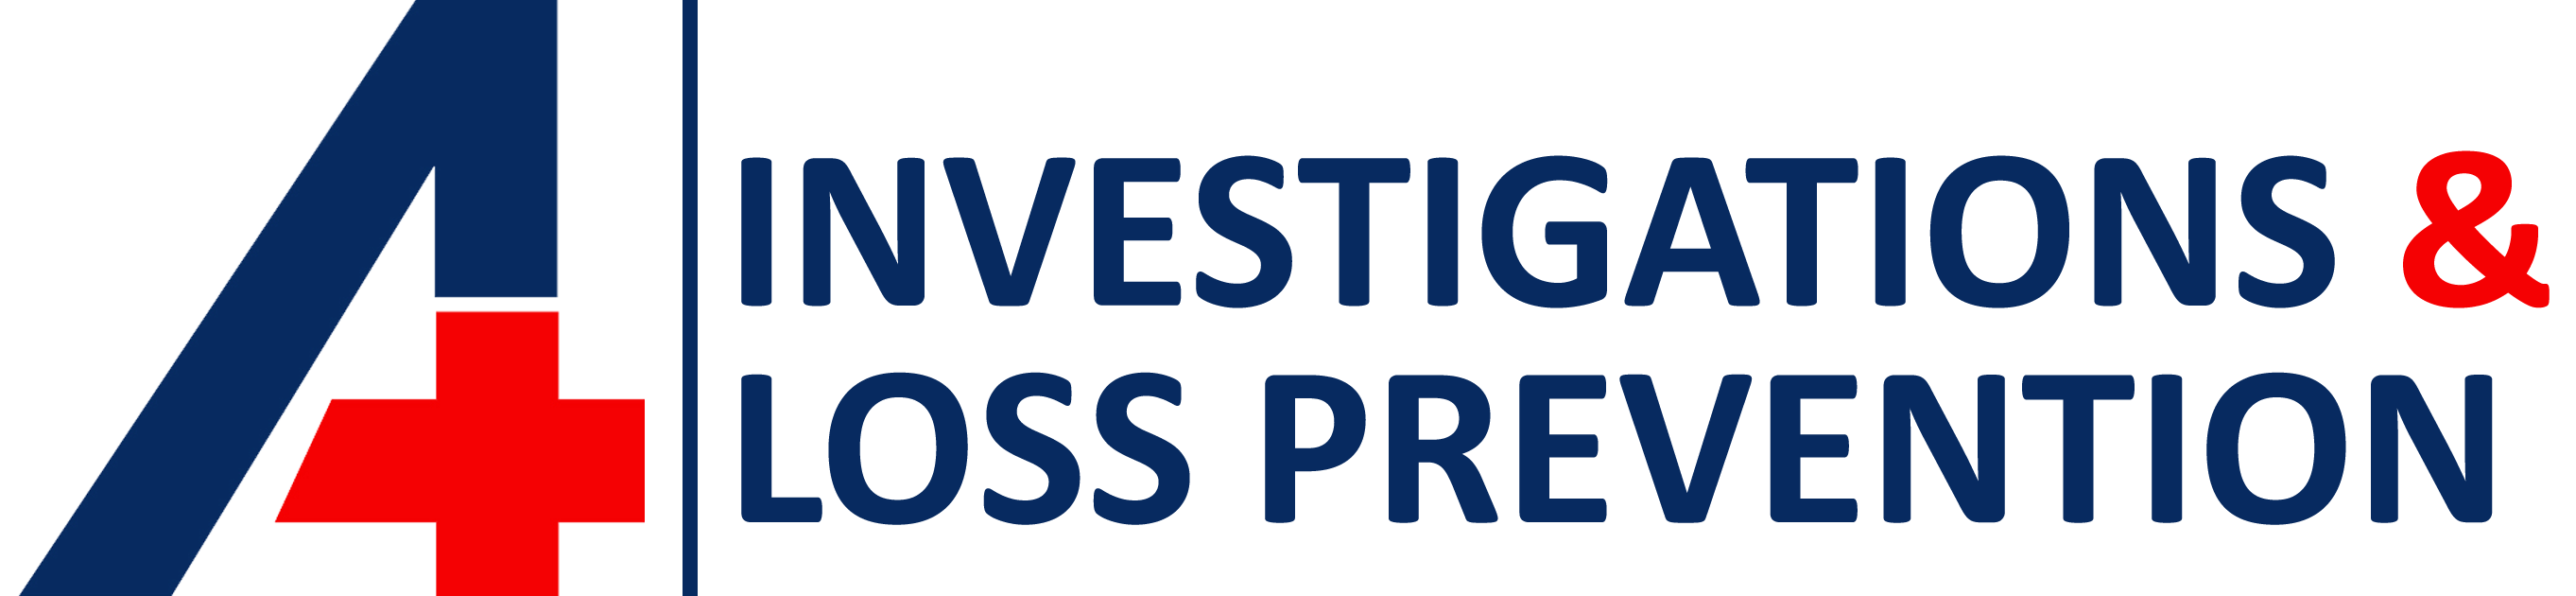 A+ Investigations & Loss Prevention LLC